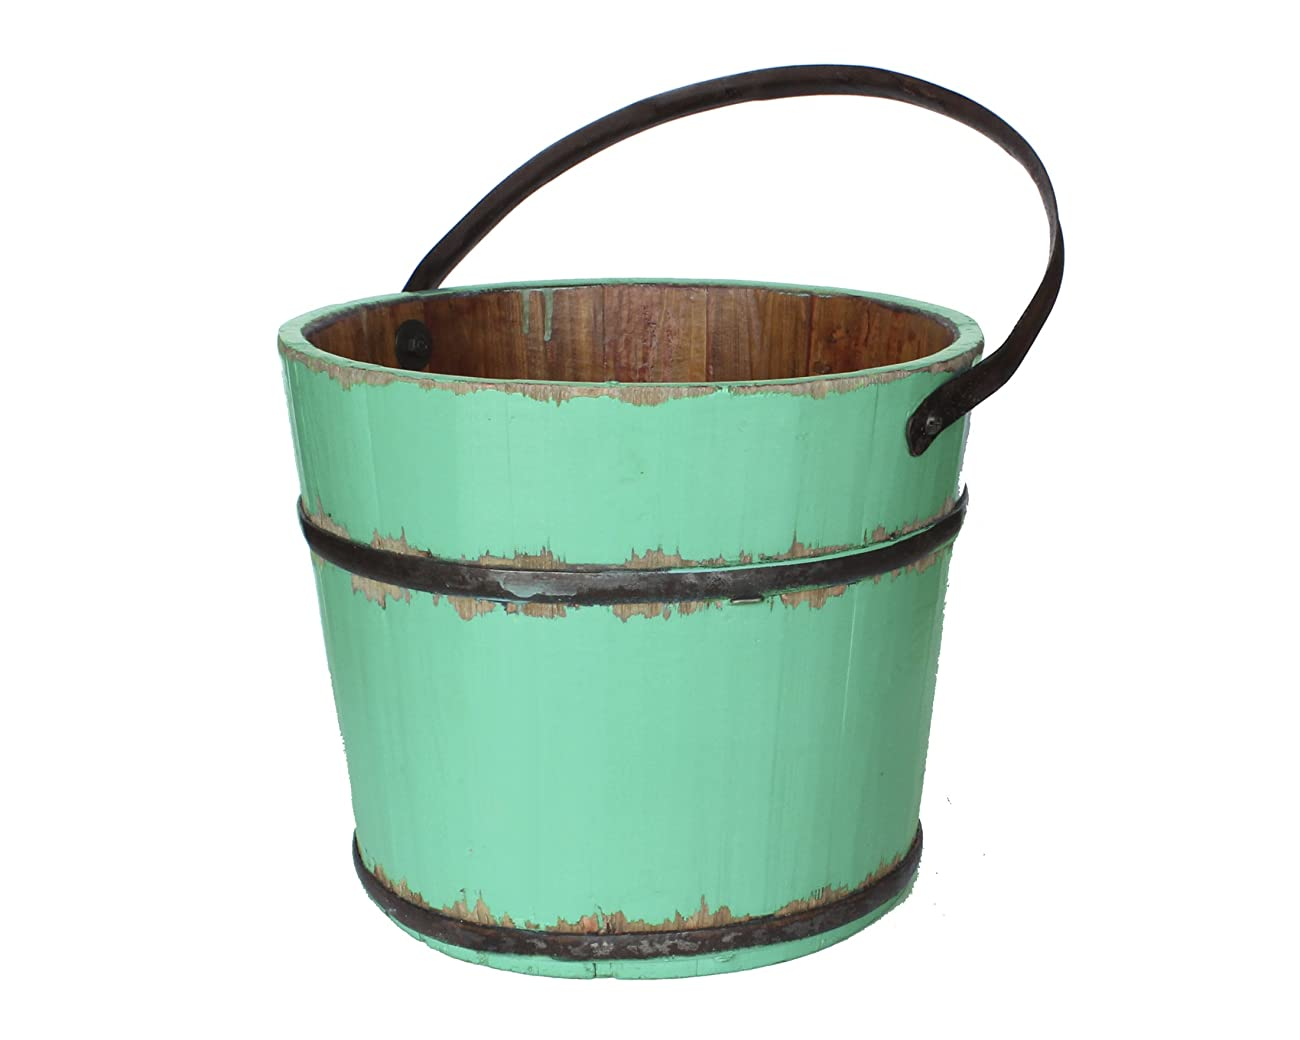 Antique Revival Vintage Anqing House Bucket, Turquoise 0